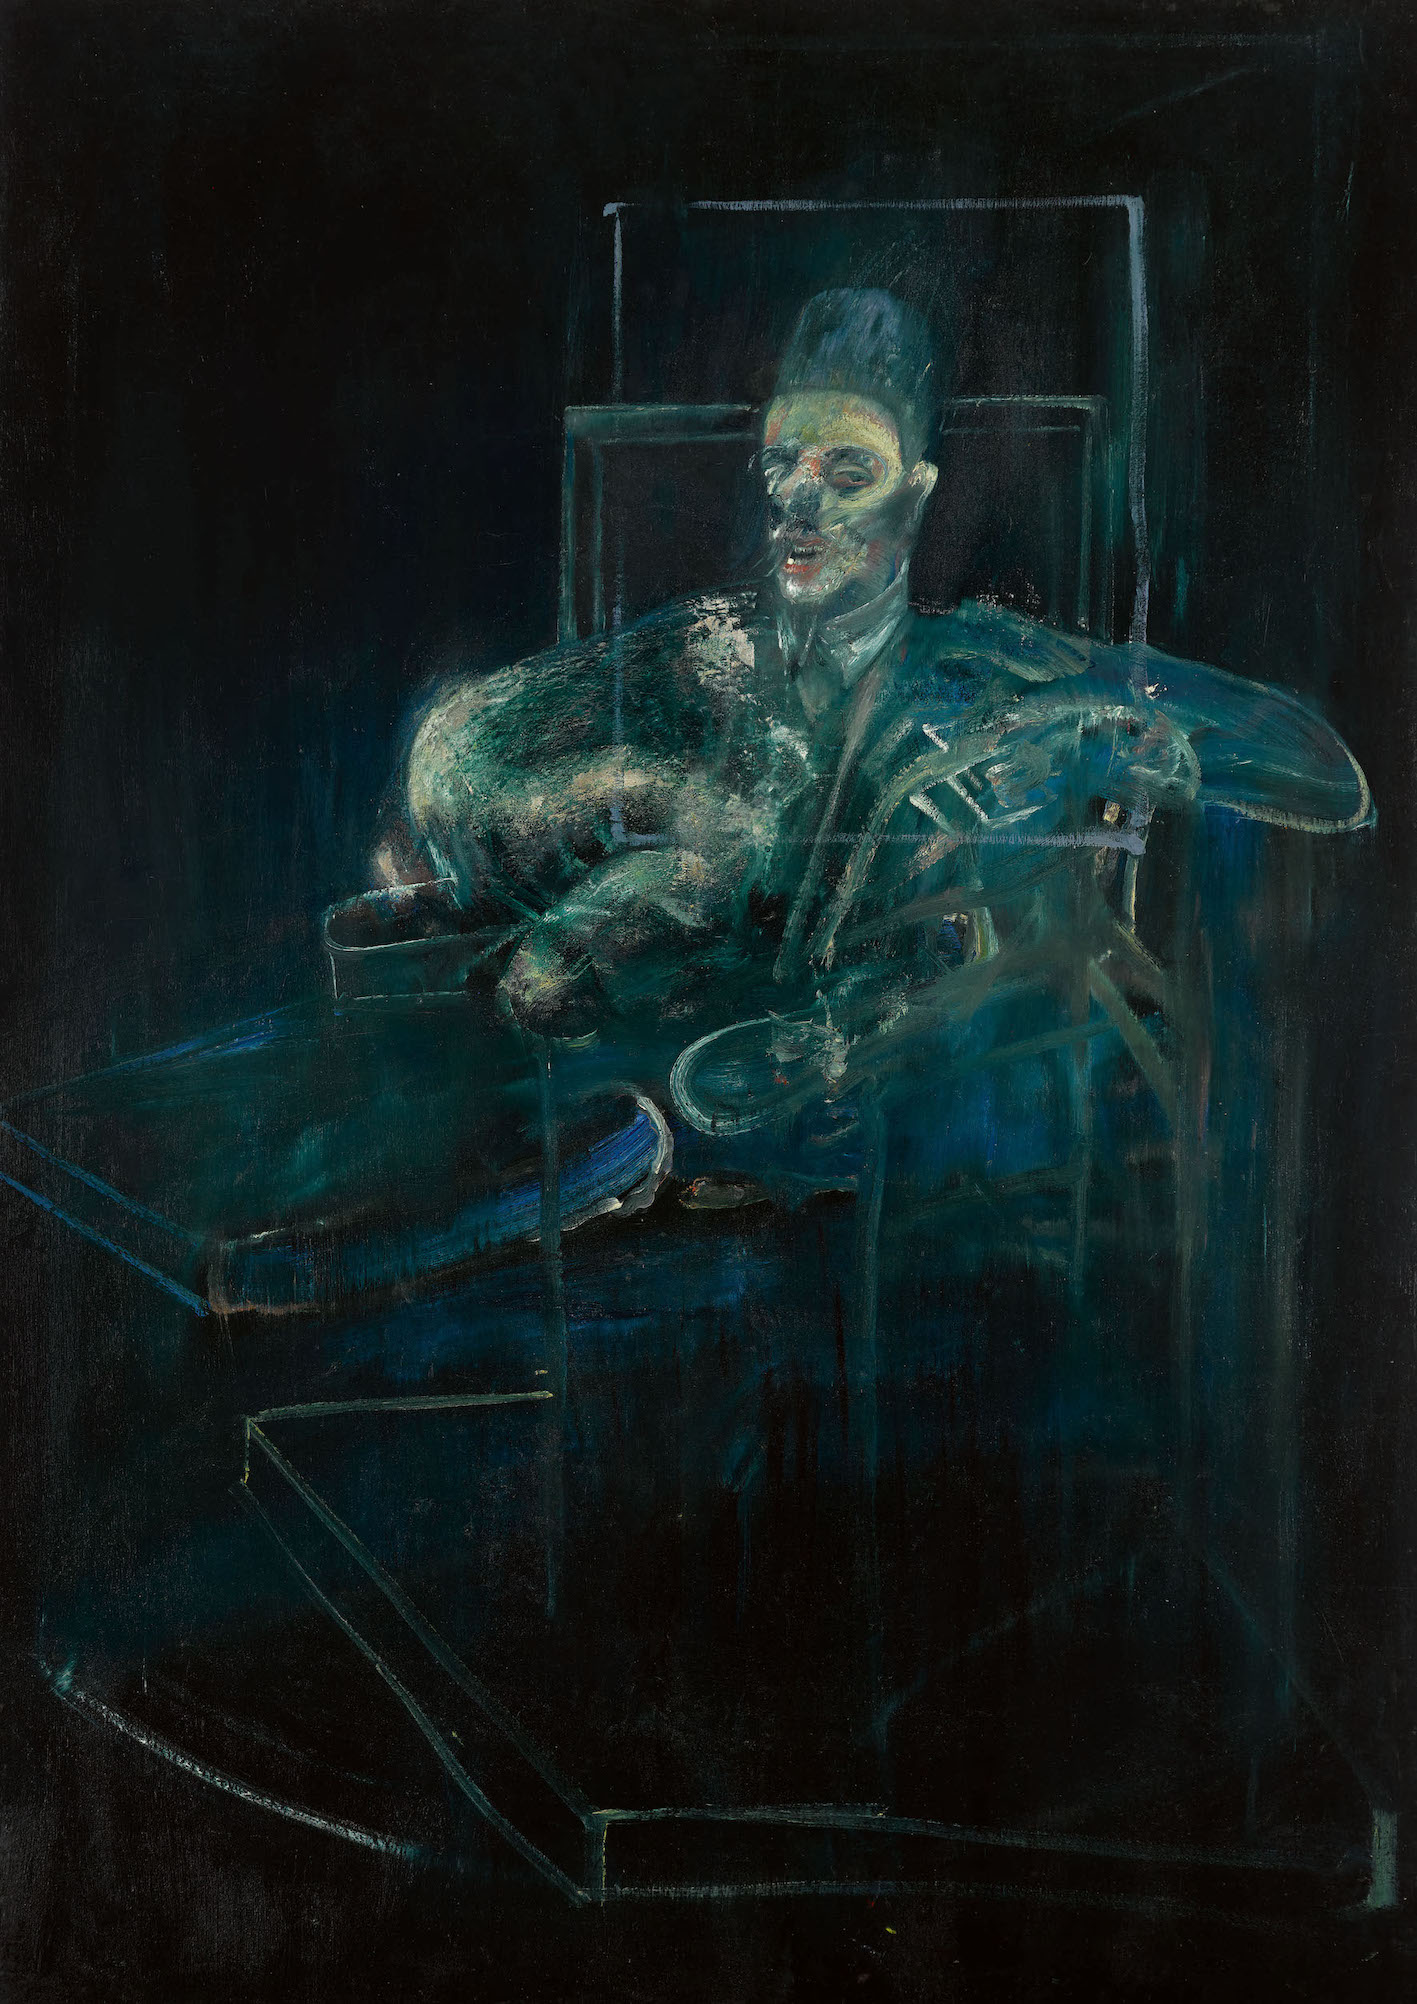 Property from the Brooklyn Museum, Sold to Support Museum Collections Francis Bacon Pope Oil on canvas 77⅛ by 55⅞ in. 195.9 by 141.9 cm. Executed circa 1958. Estimate $6:8 million. Courtesy Sotheby's